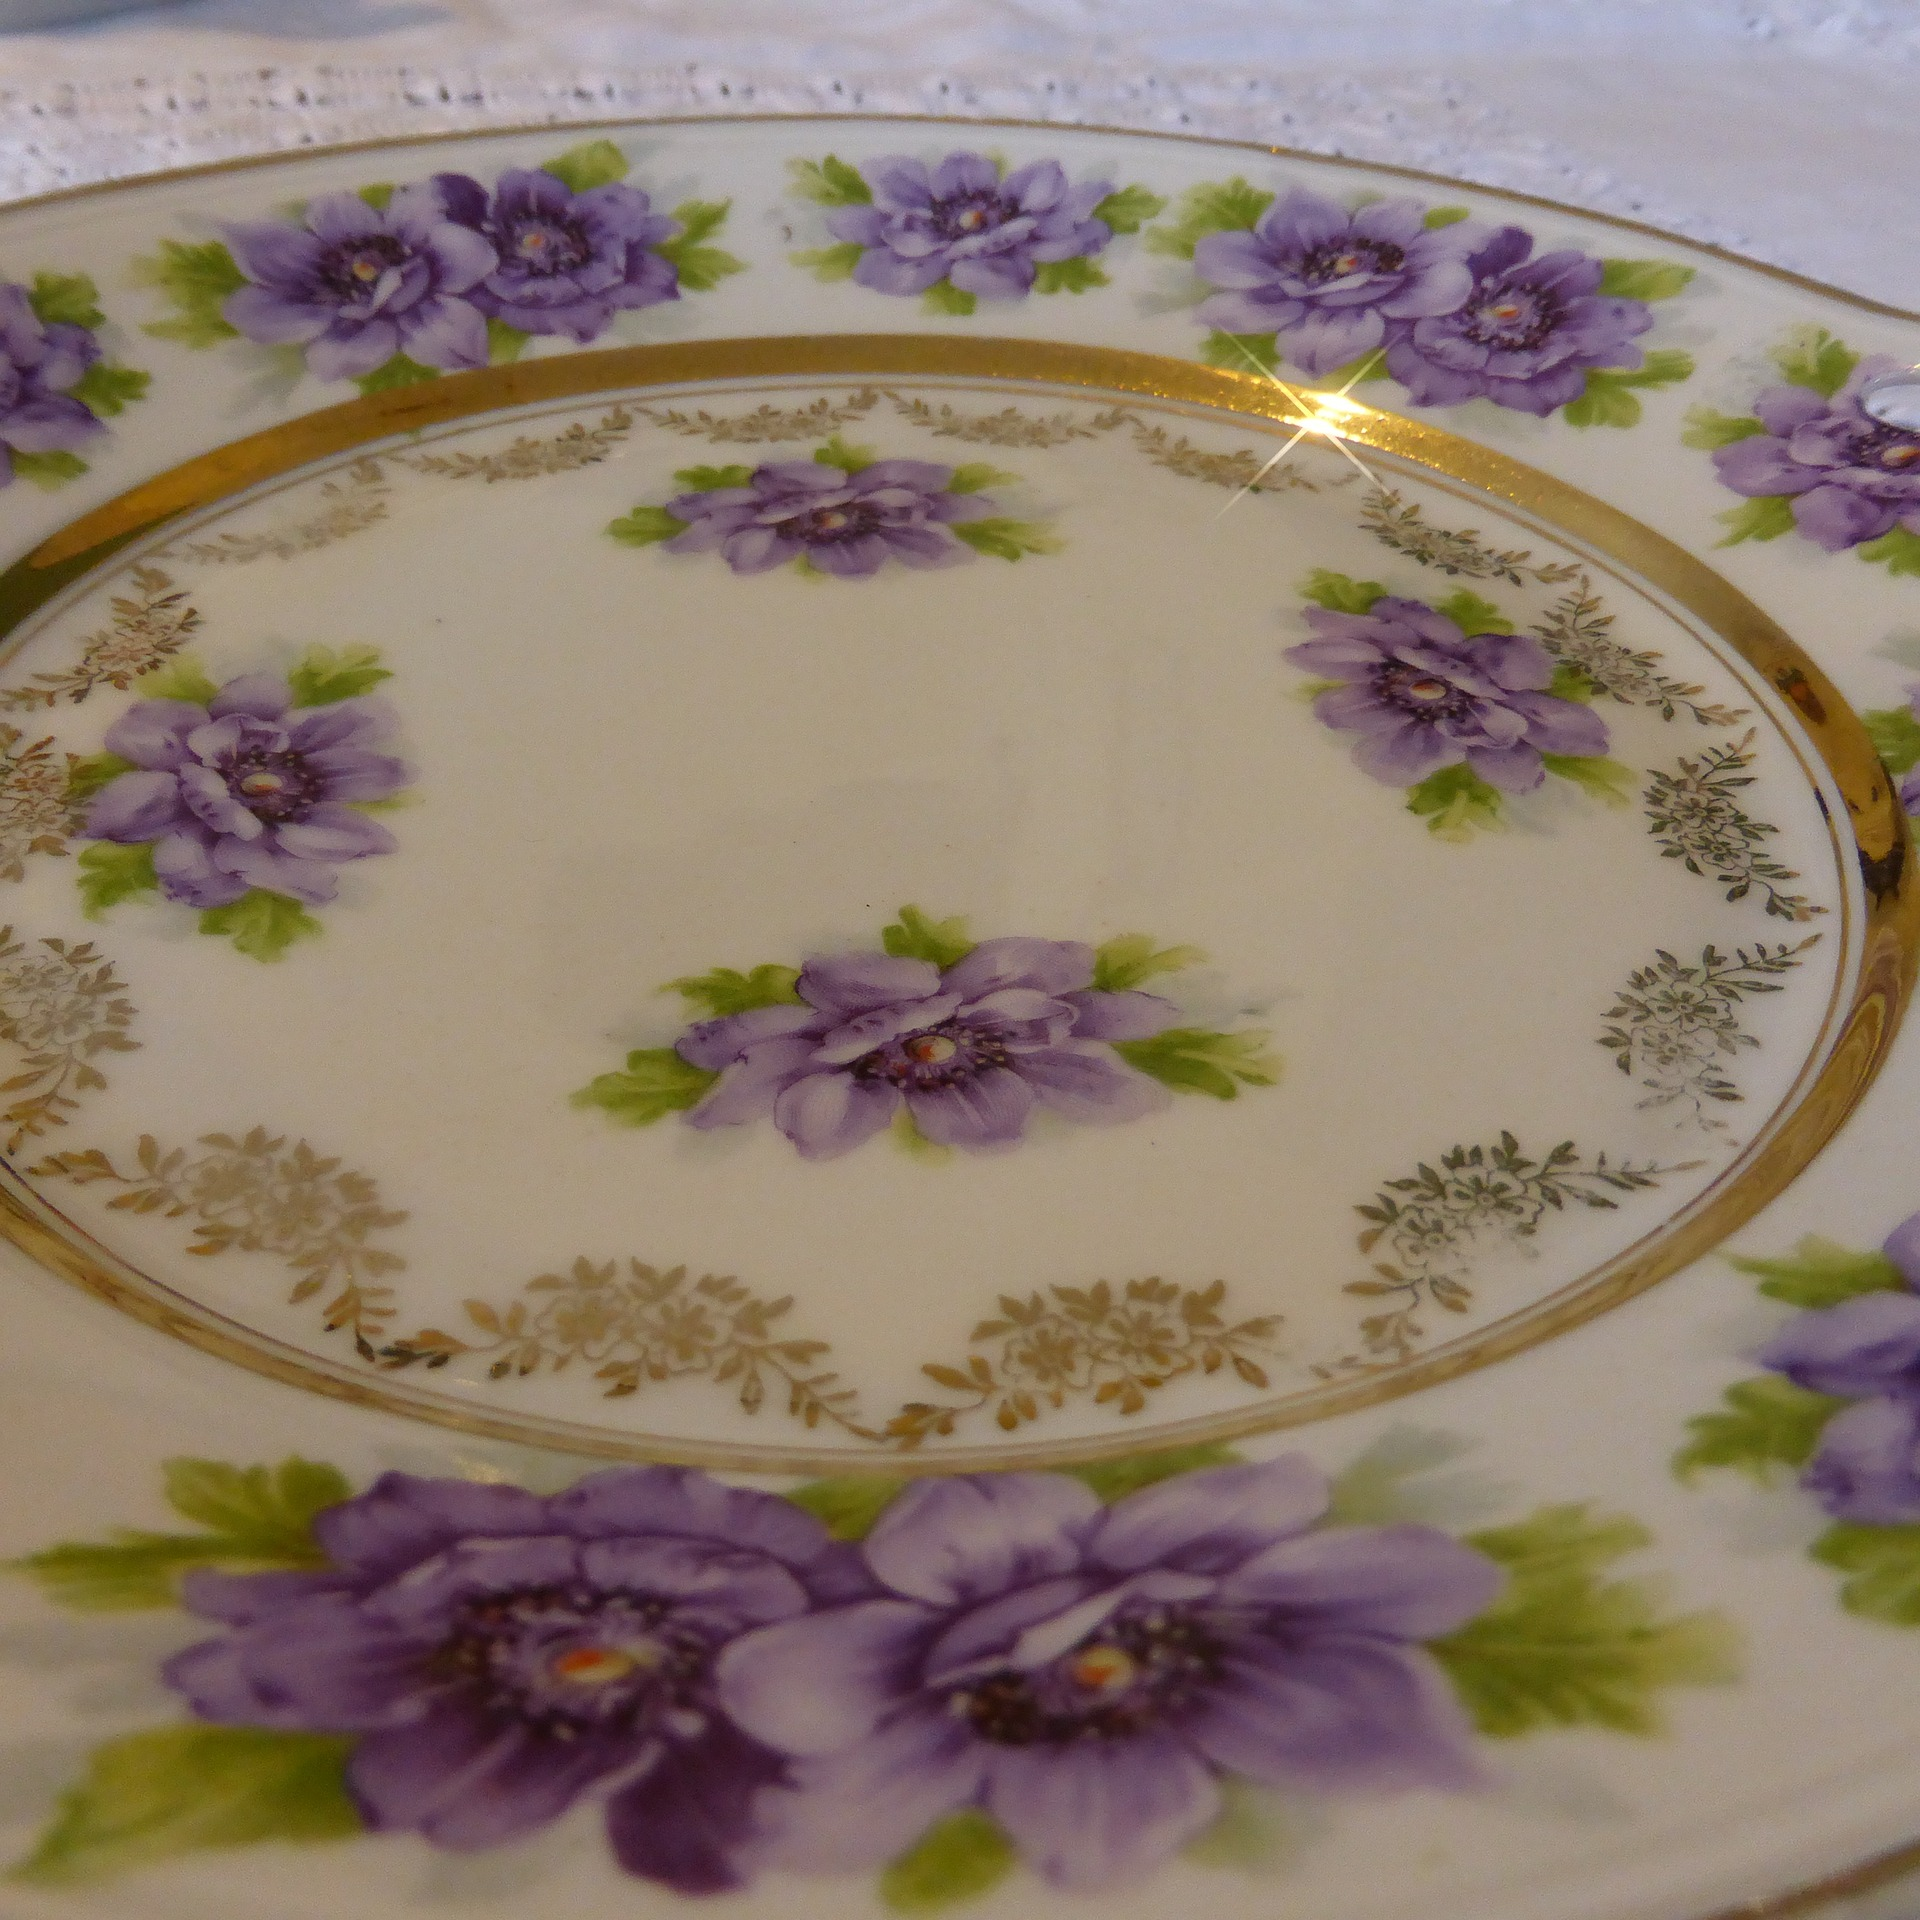 Somebody somewhere will really like this old china!